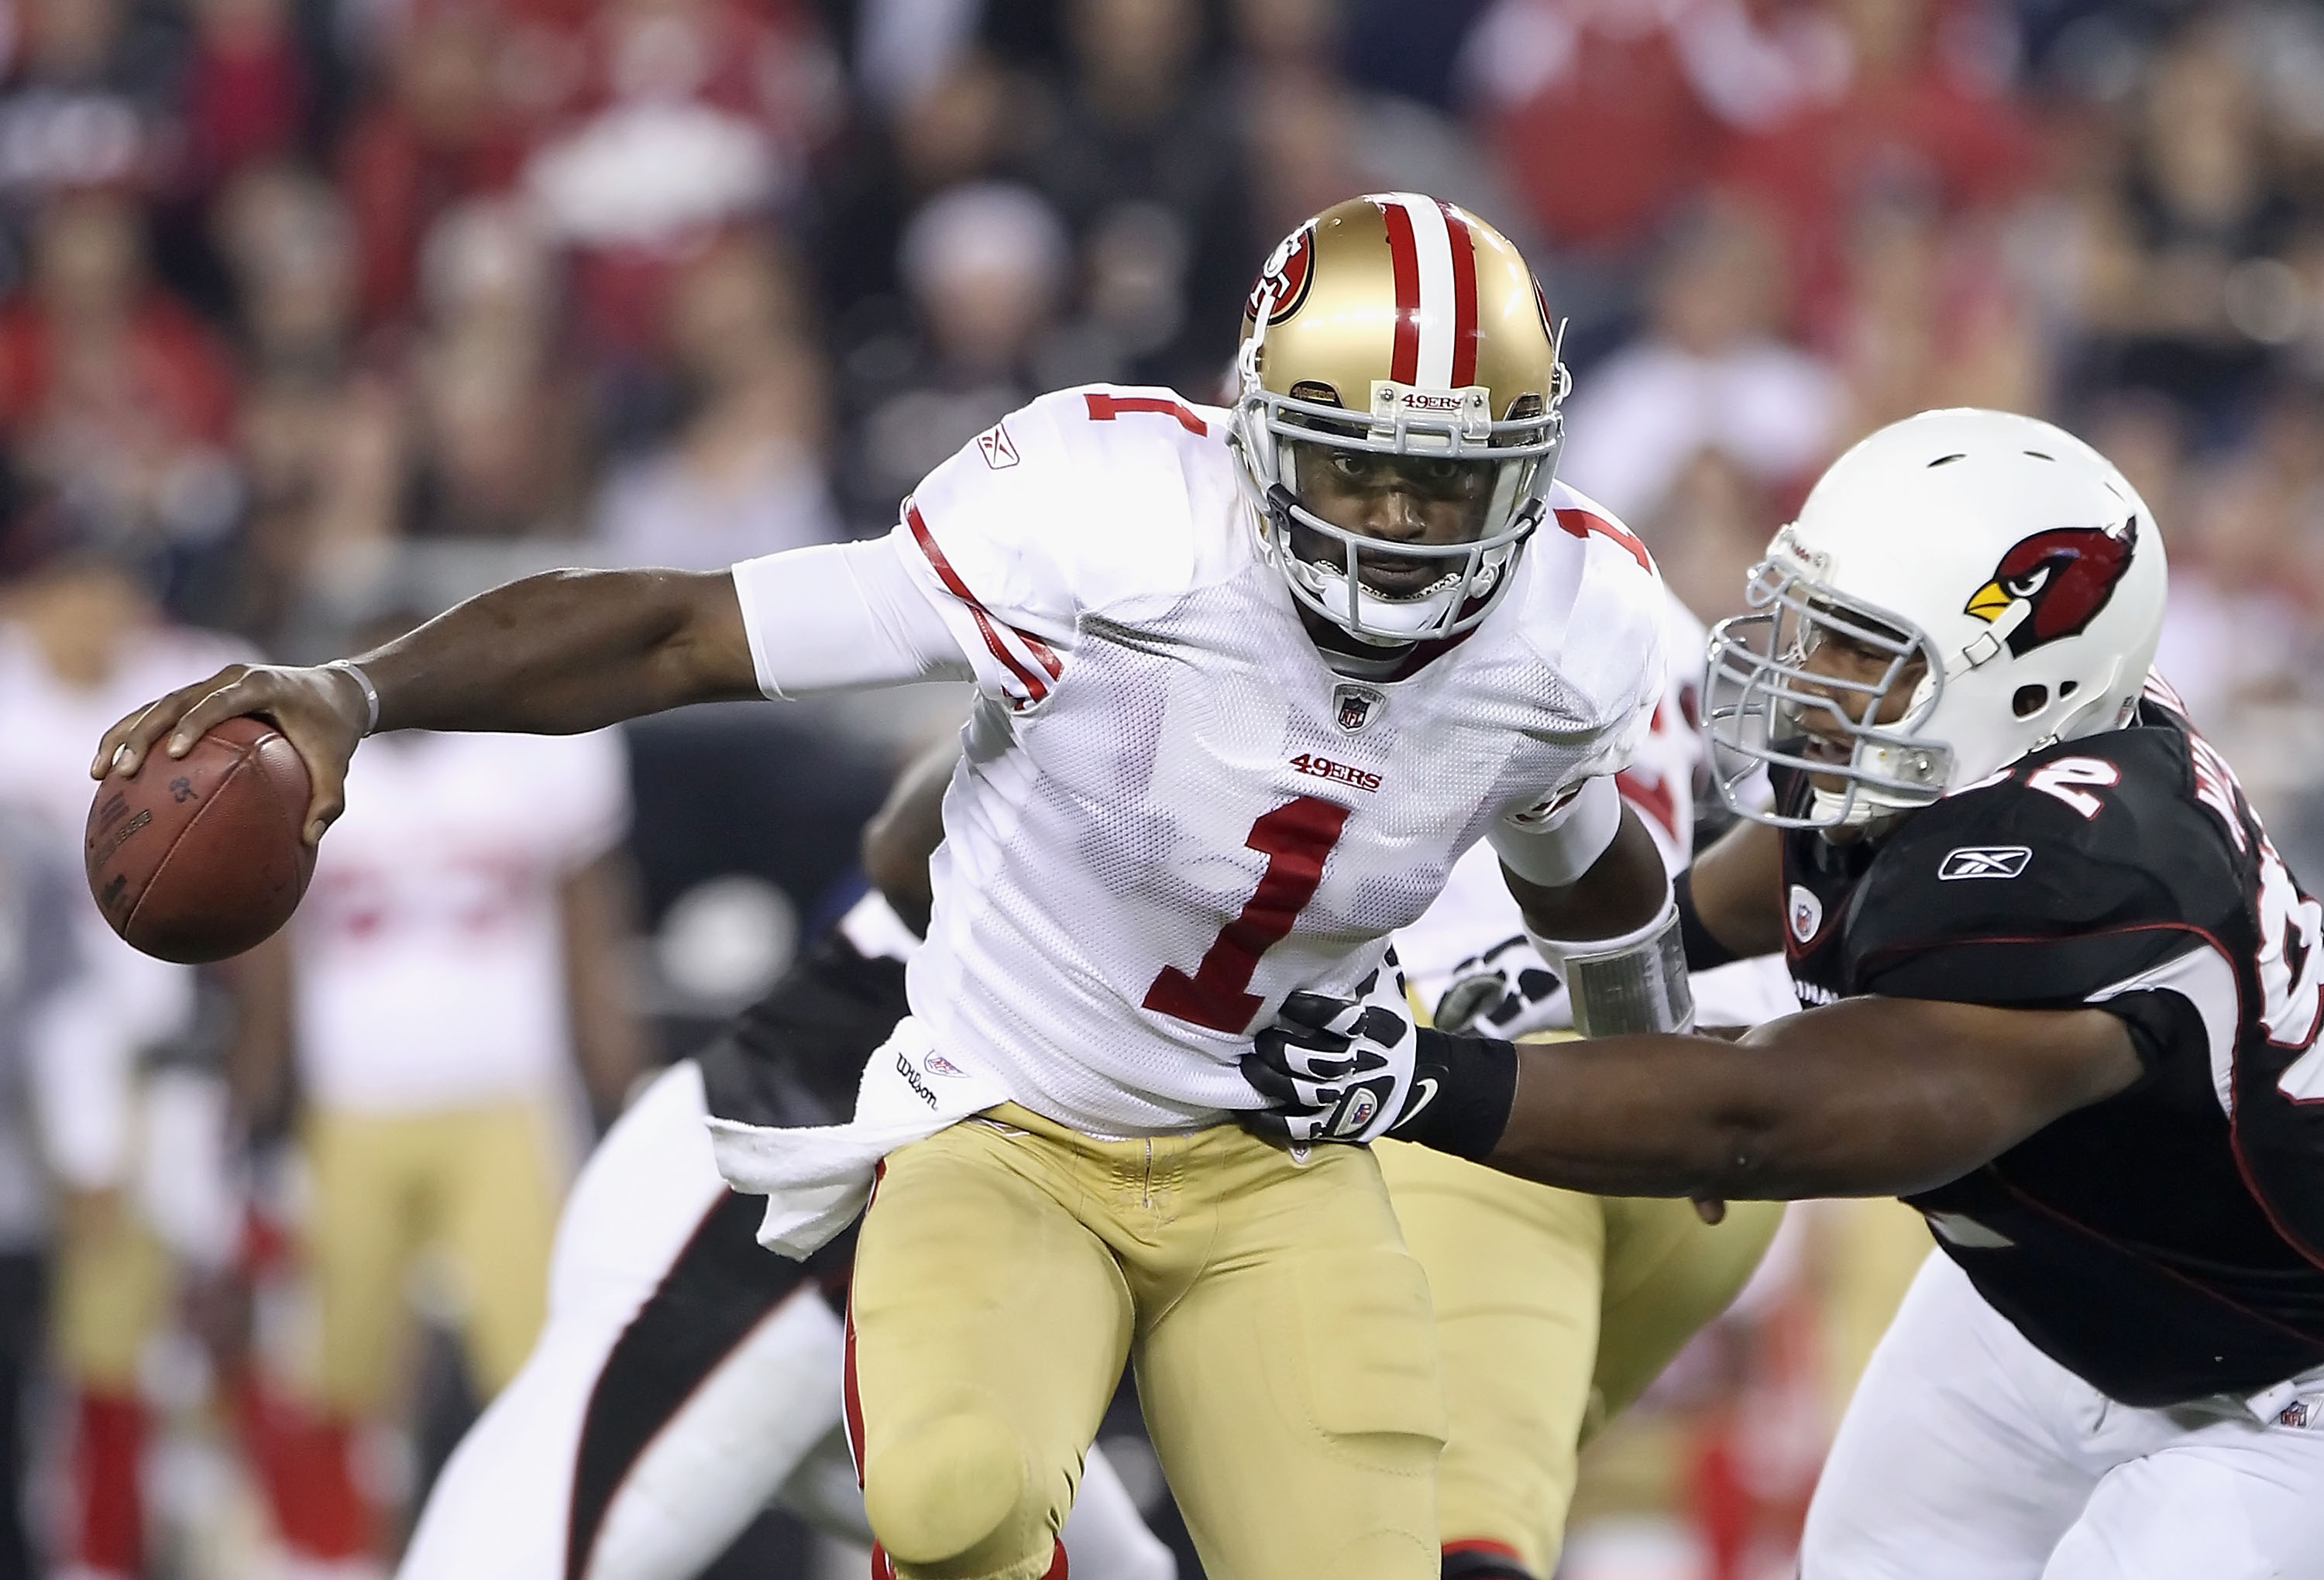 GLENDALE, AZ - NOVEMBER 29:  Quarterback Troy Smith #1 of the San Francisco 49ers scrambles with the football under pressure from Dan Williams #92 of the Arizona Cardinals during the first quarter of the NFL game at the University of Phoenix Stadium on No